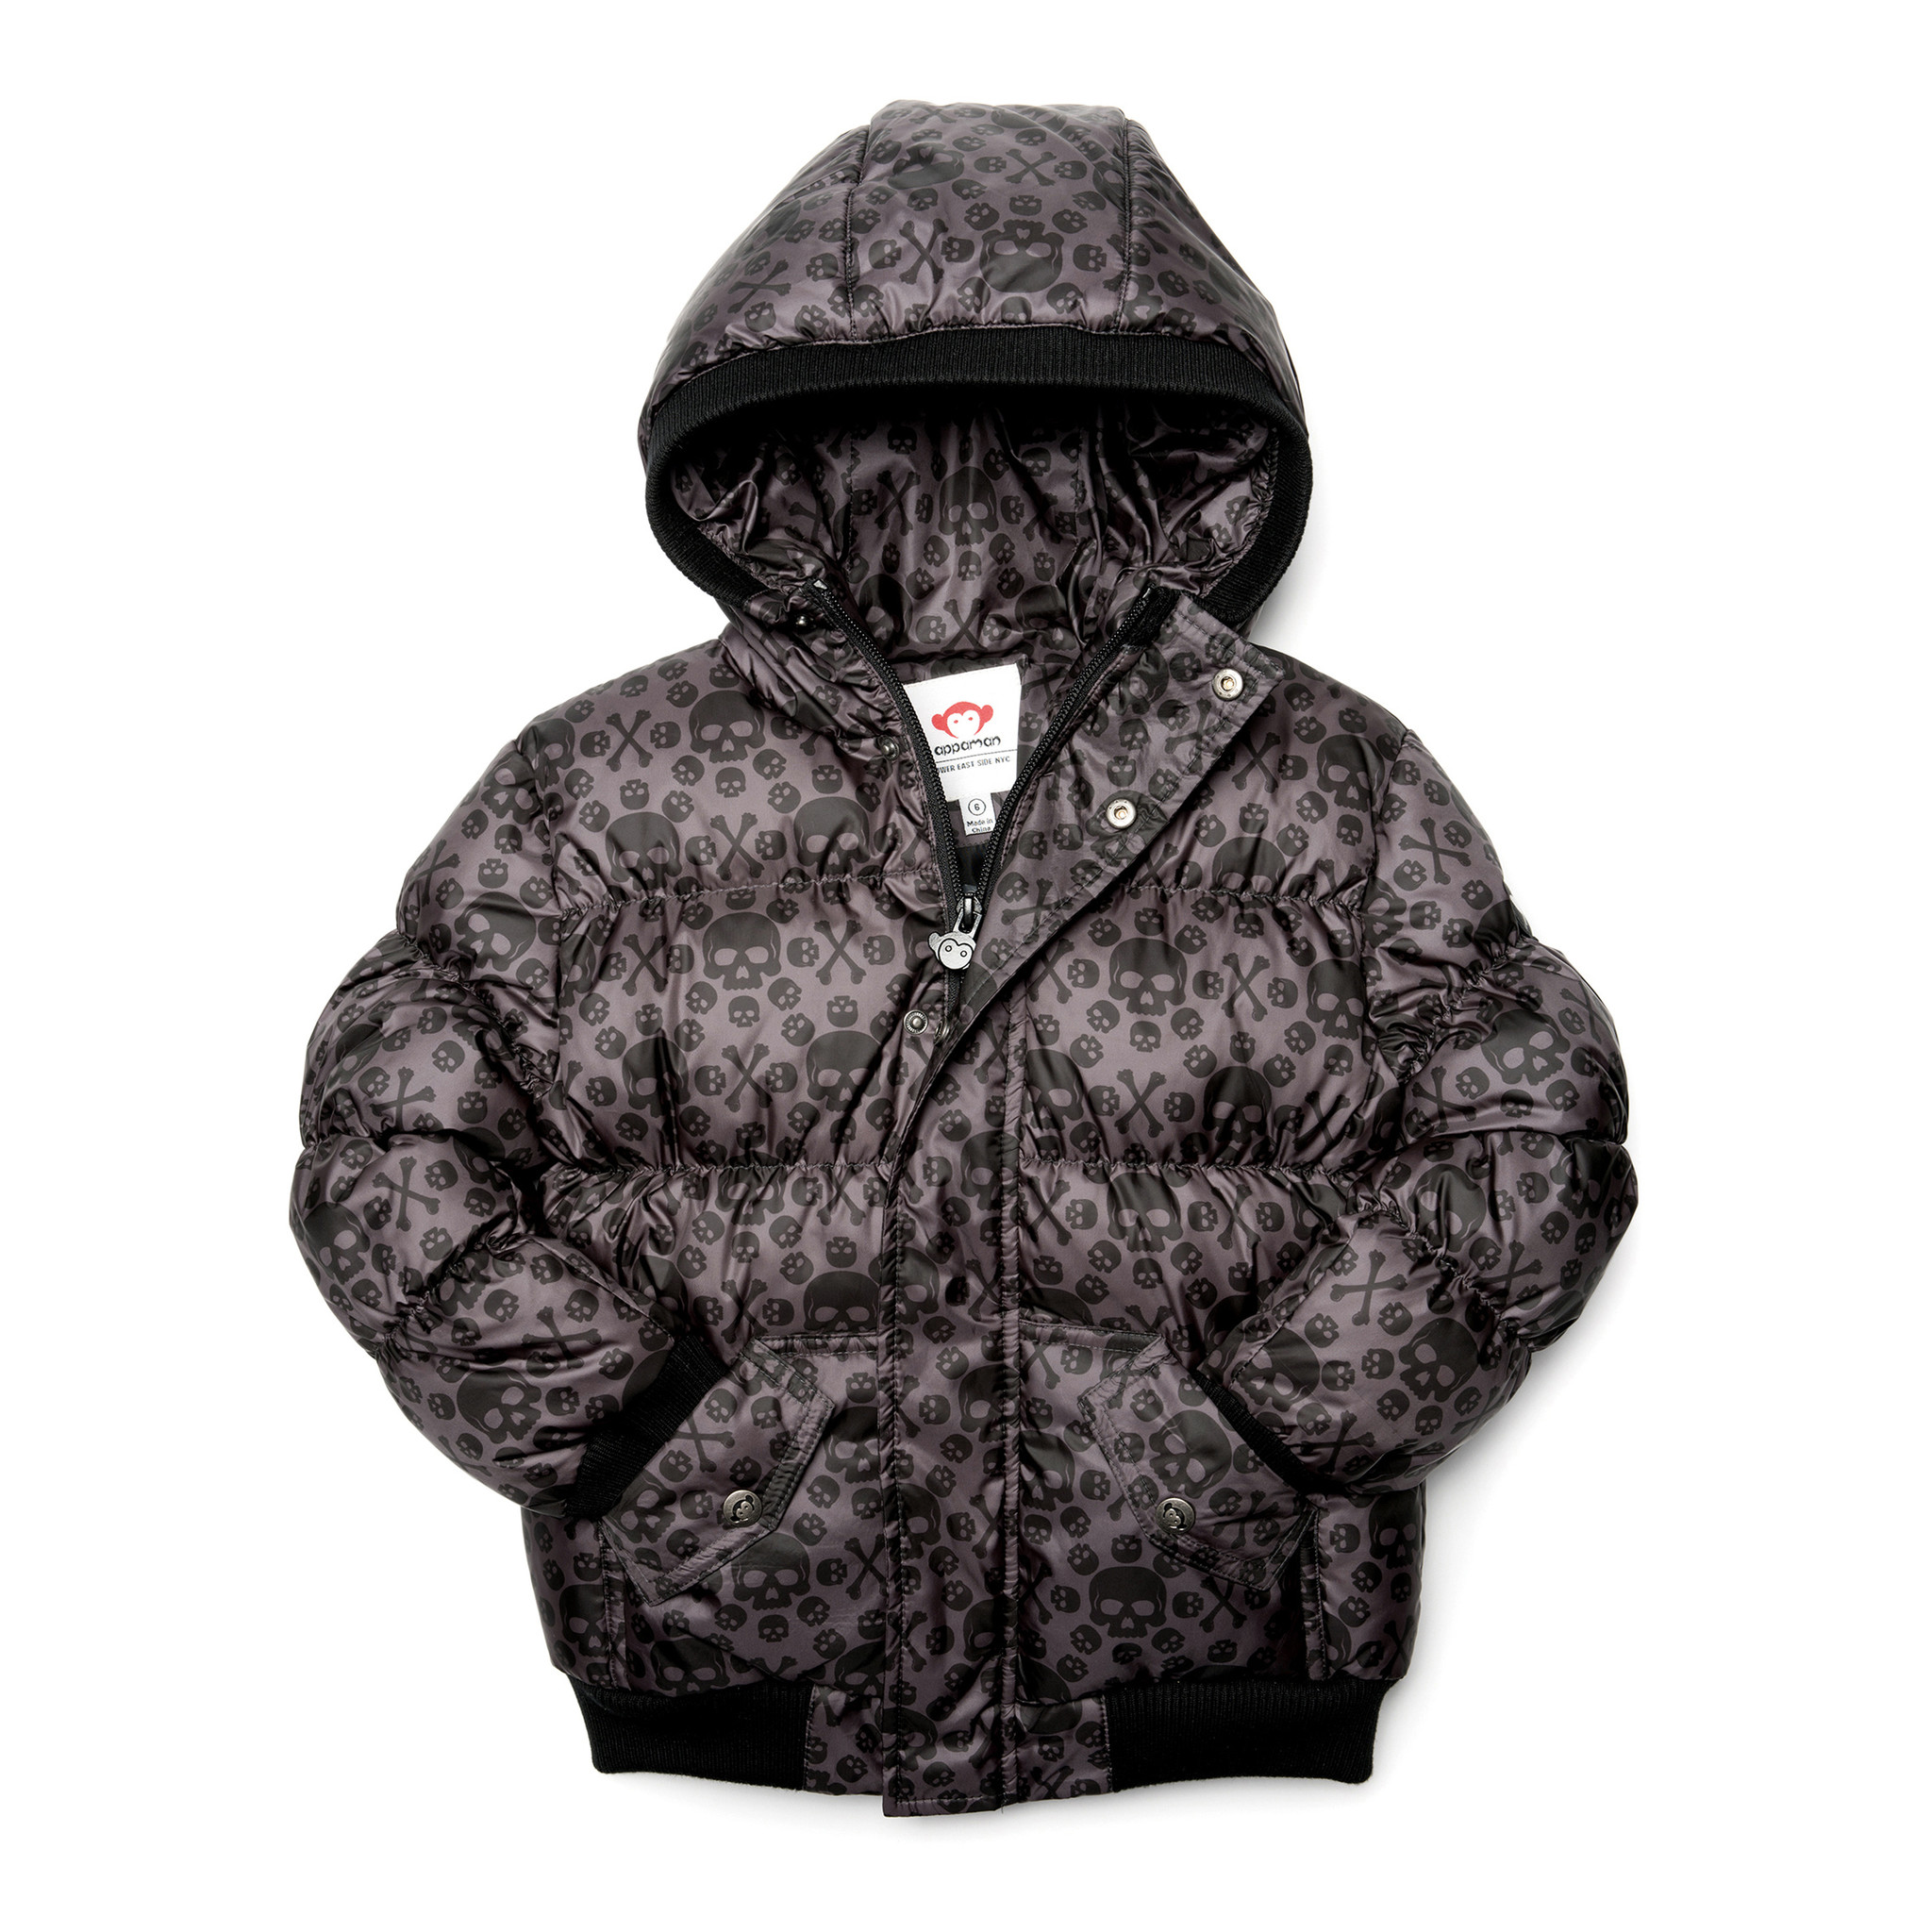 Appaman Skull Print Puffy Coat